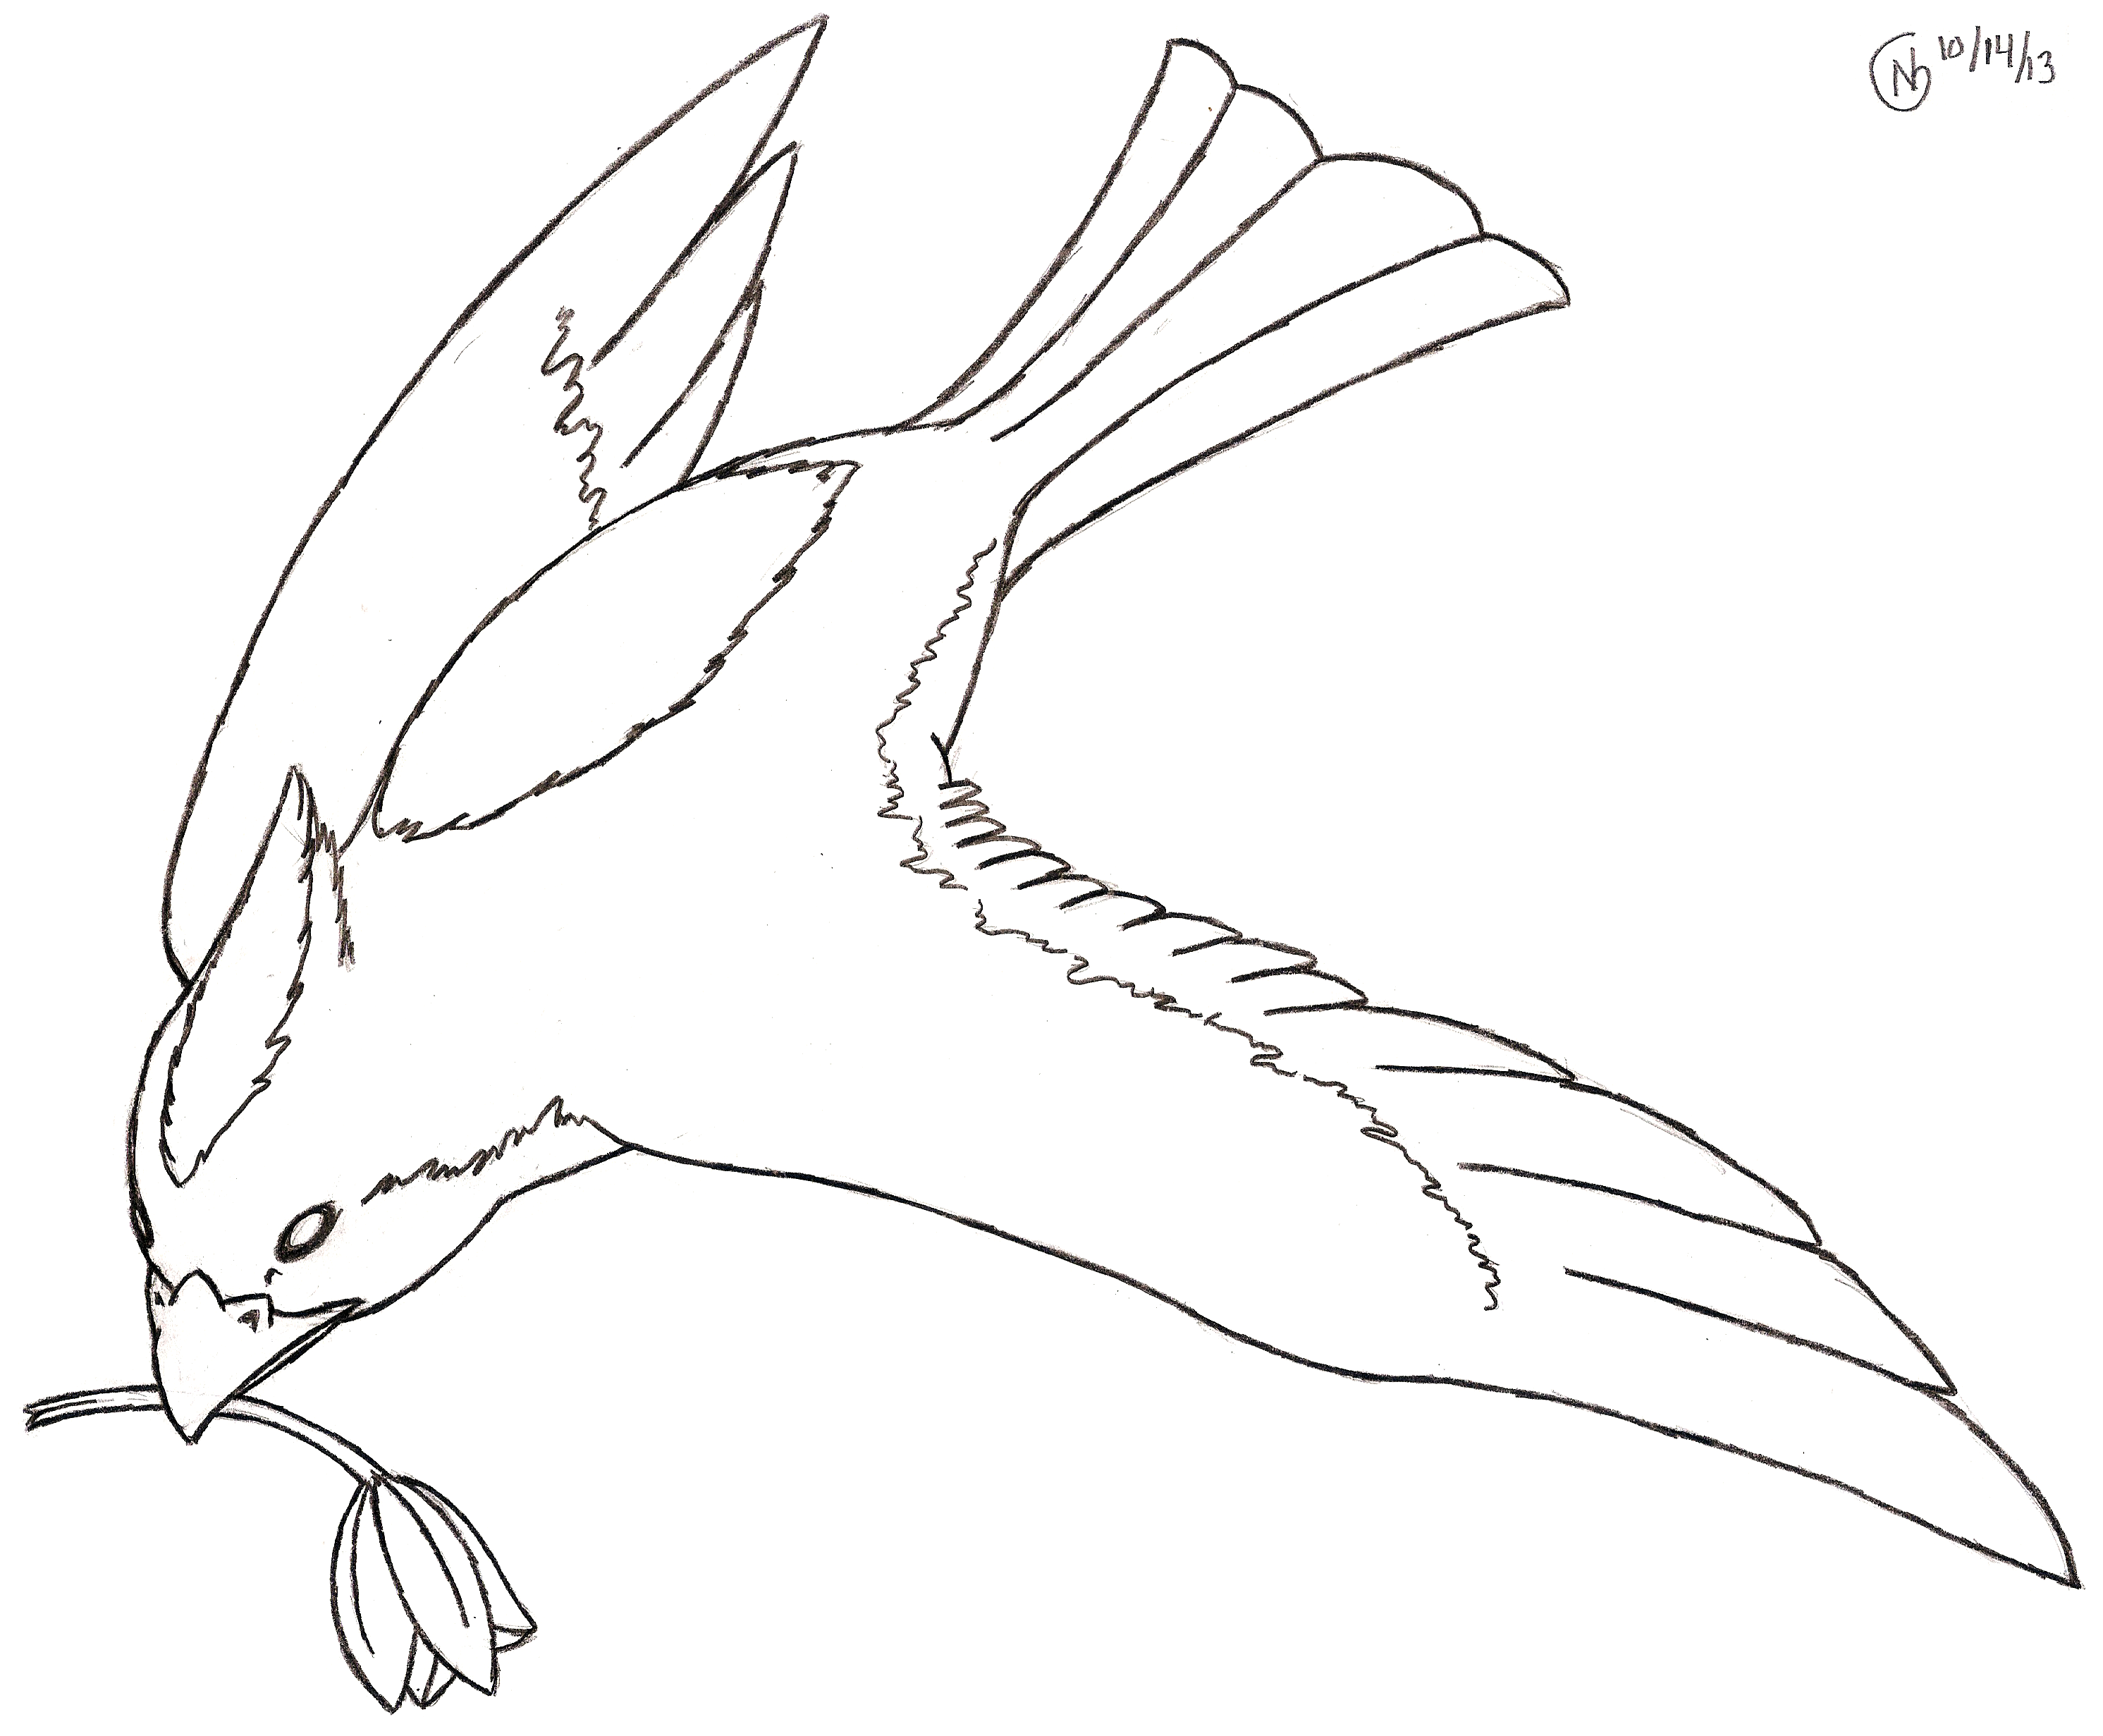 Line Drawings Of Birds In Flight - ClipArt Best